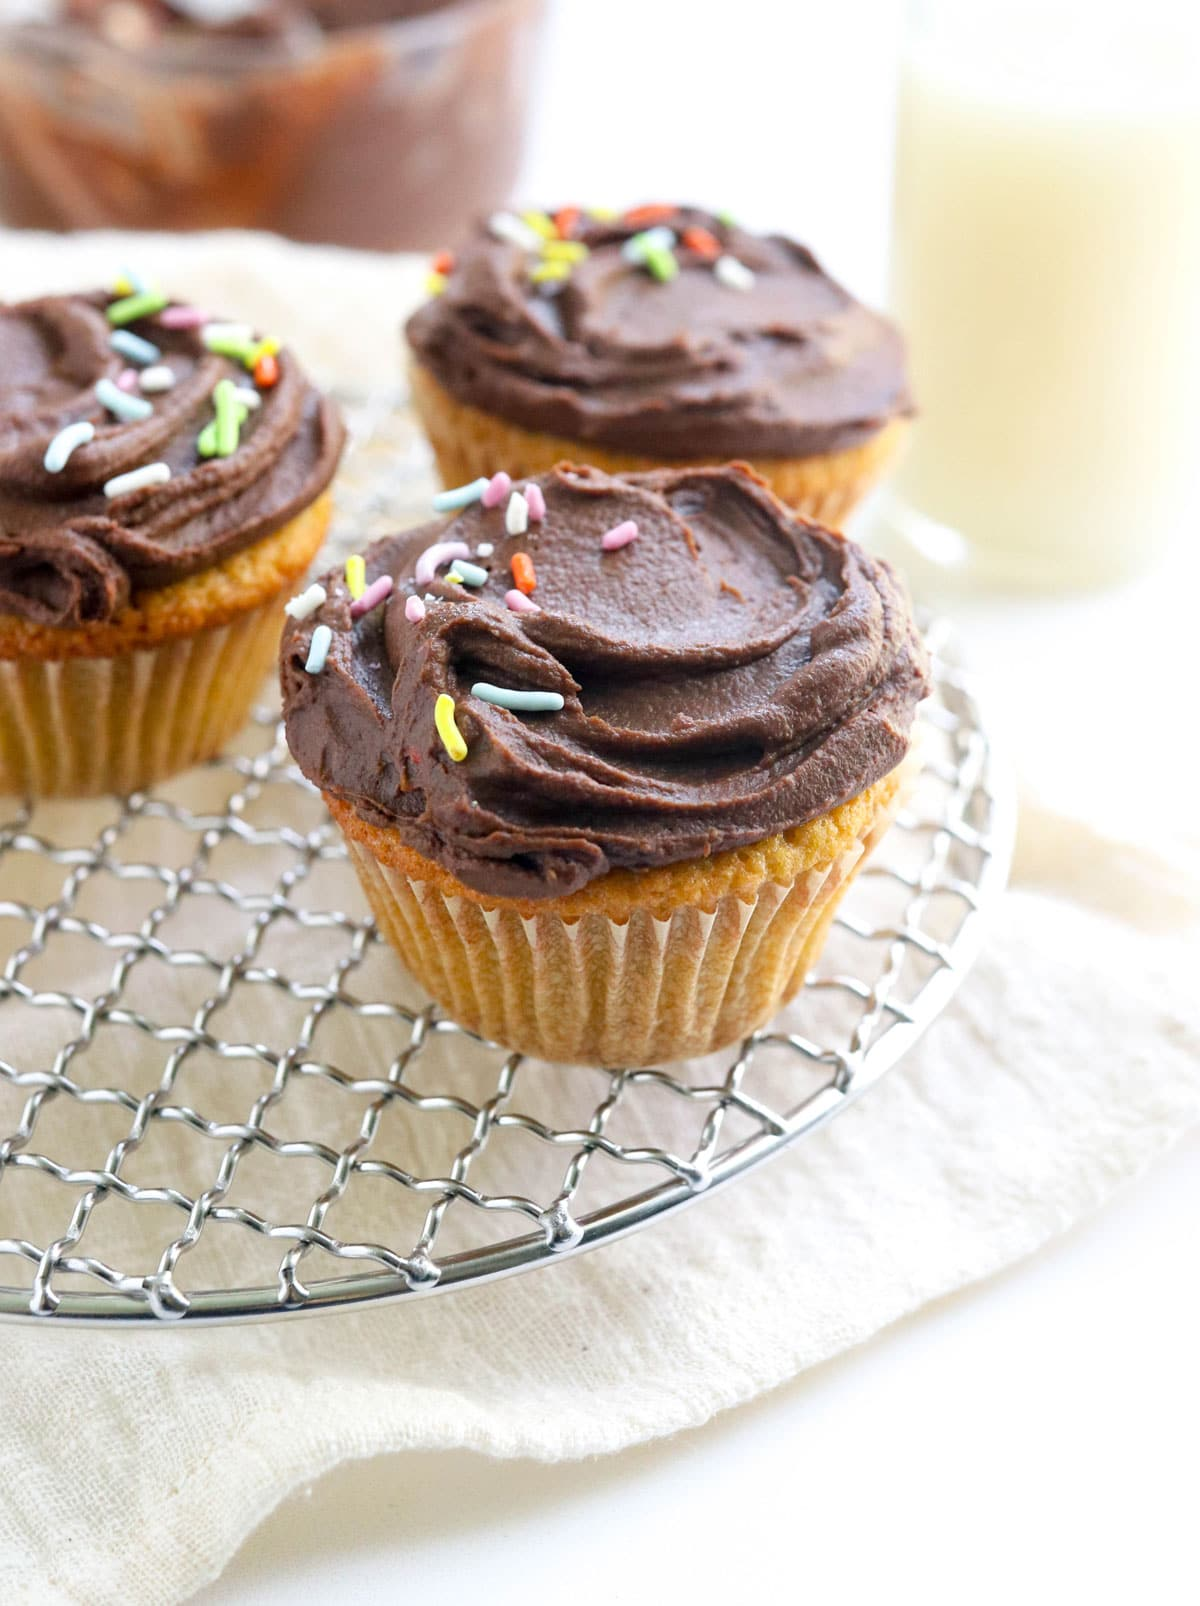 vanilla cupcakes with chocolate frosting and sprinkles